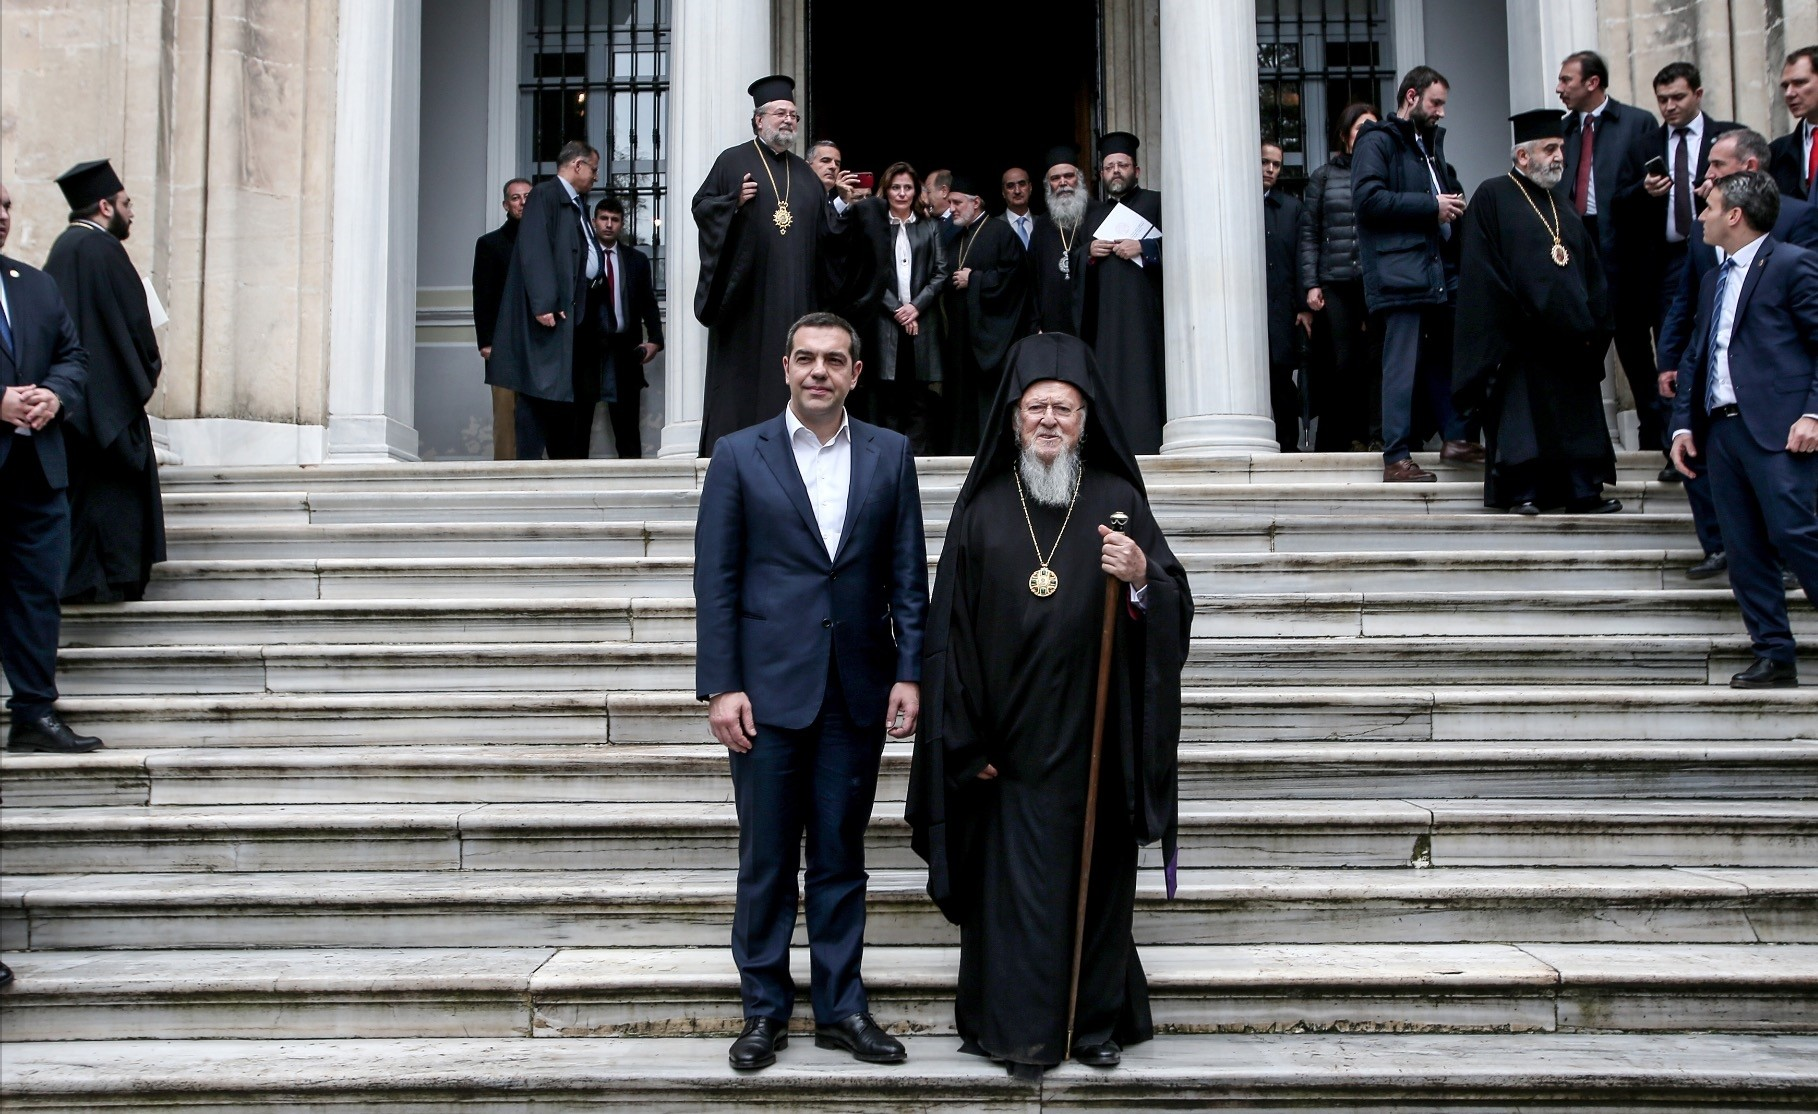 During his trip to Turkey, Tsipras became the first Greek prime minister to visit the Halki seminary in Heybeliada on the Princesu2019 Islands, Feb. 6, 2019.